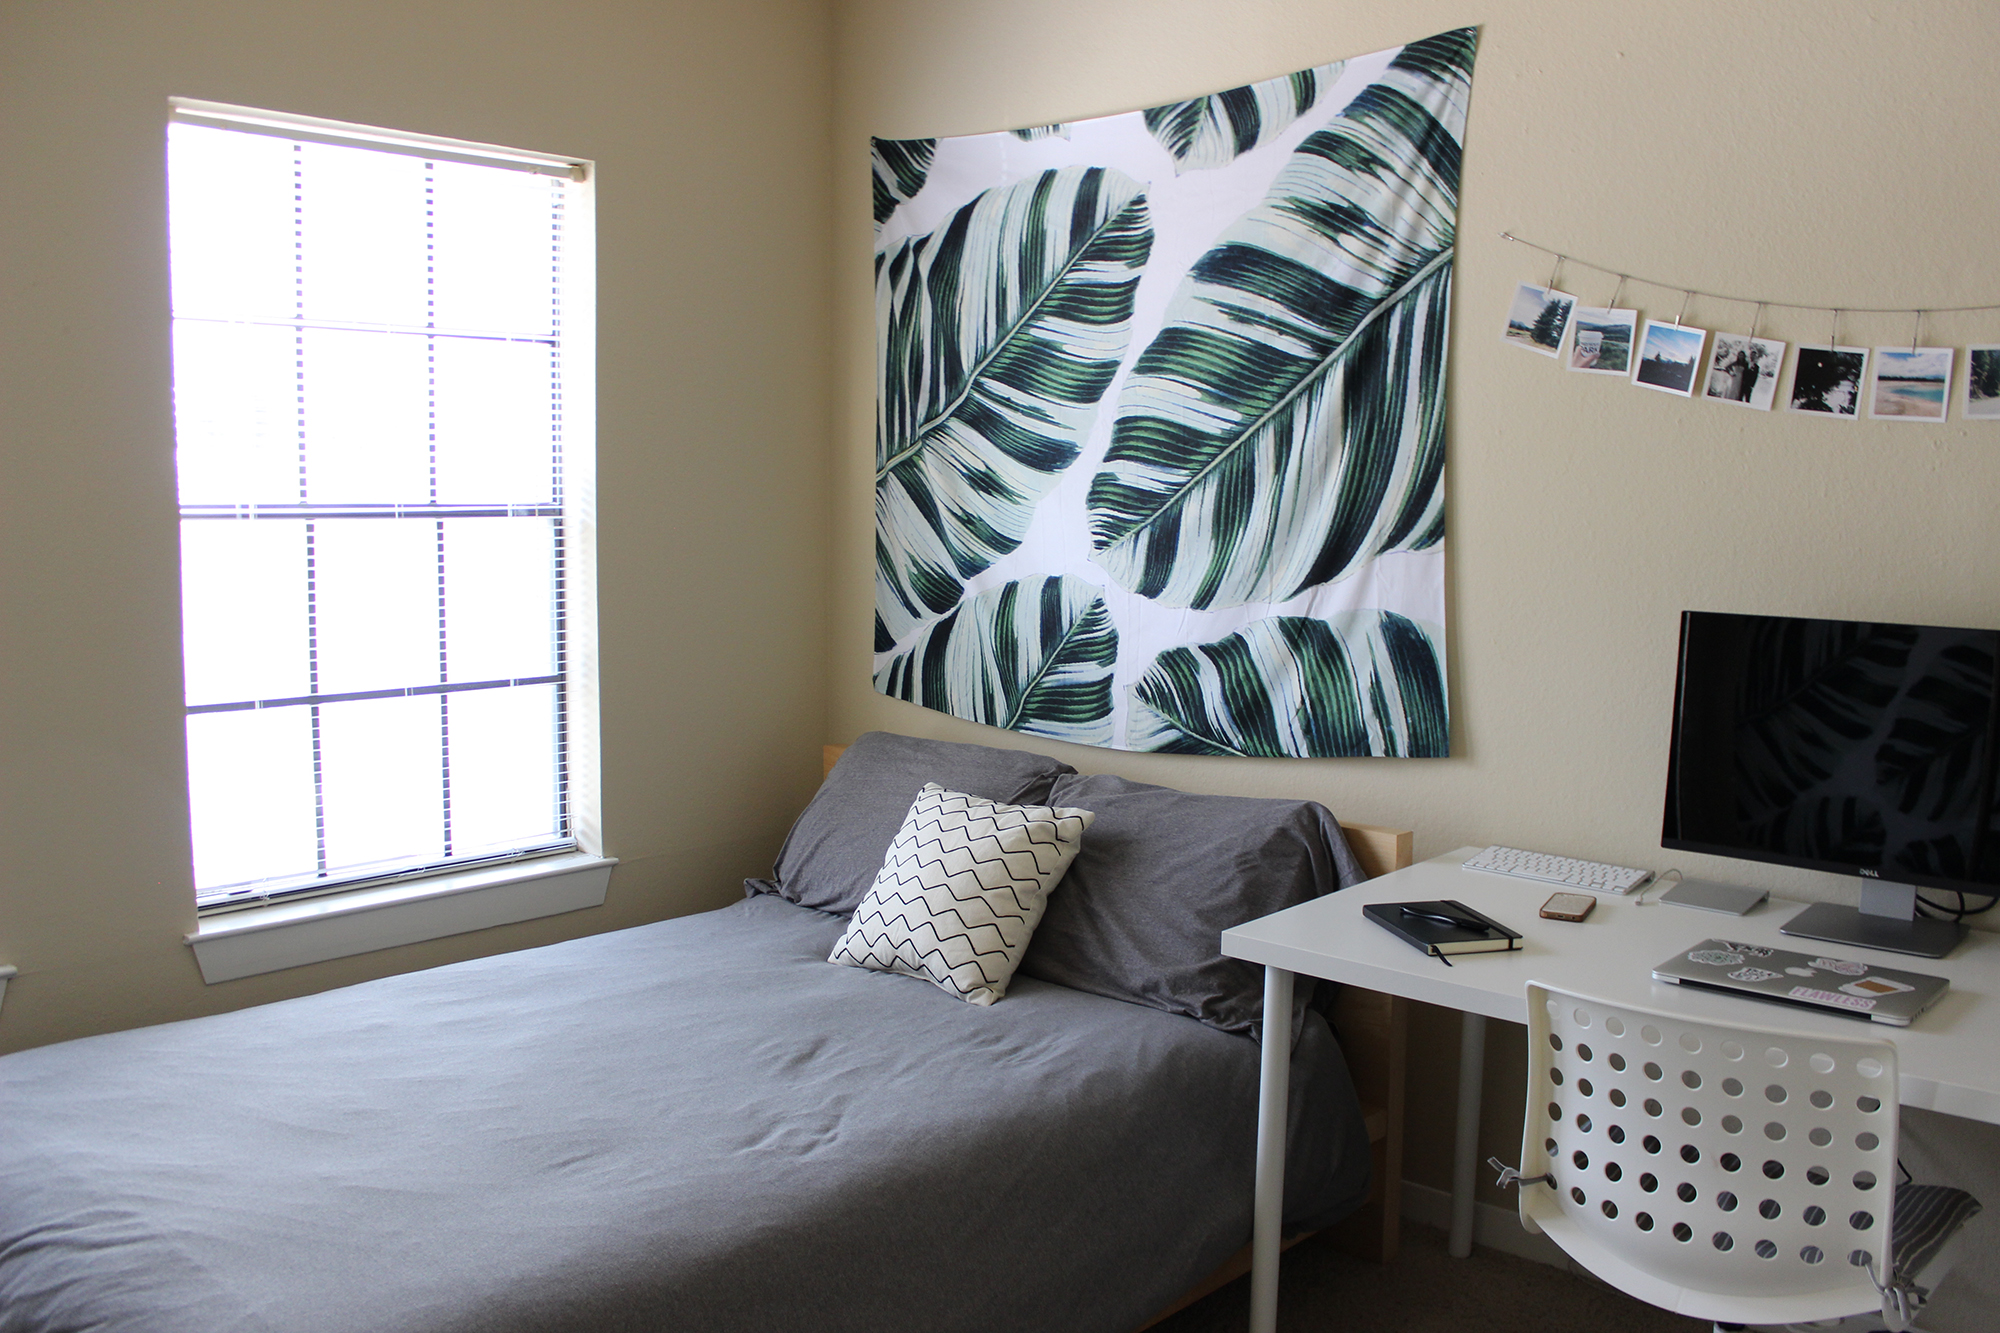 Apartment Tour | Jessica Slaughter